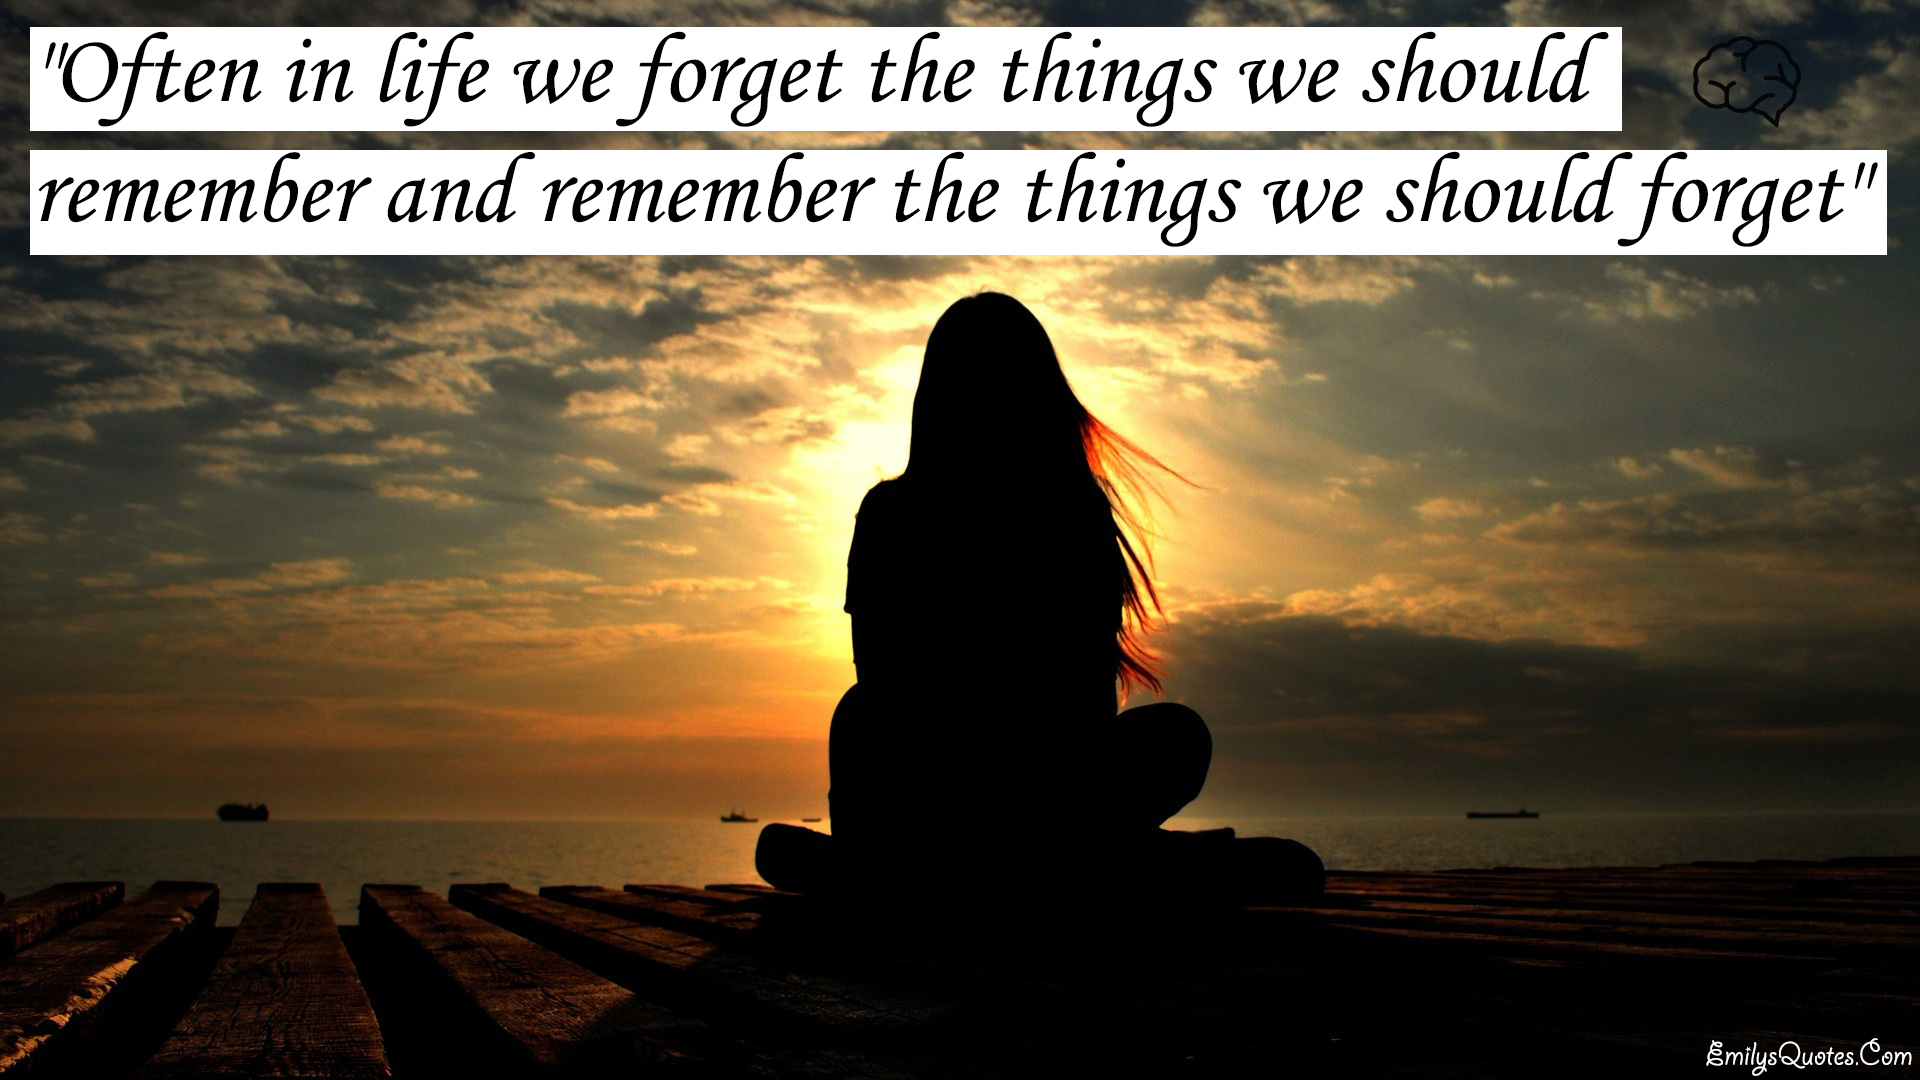 Quotes About Moving On In Life Often In Life We Forget The Things We Should Remember And Remember